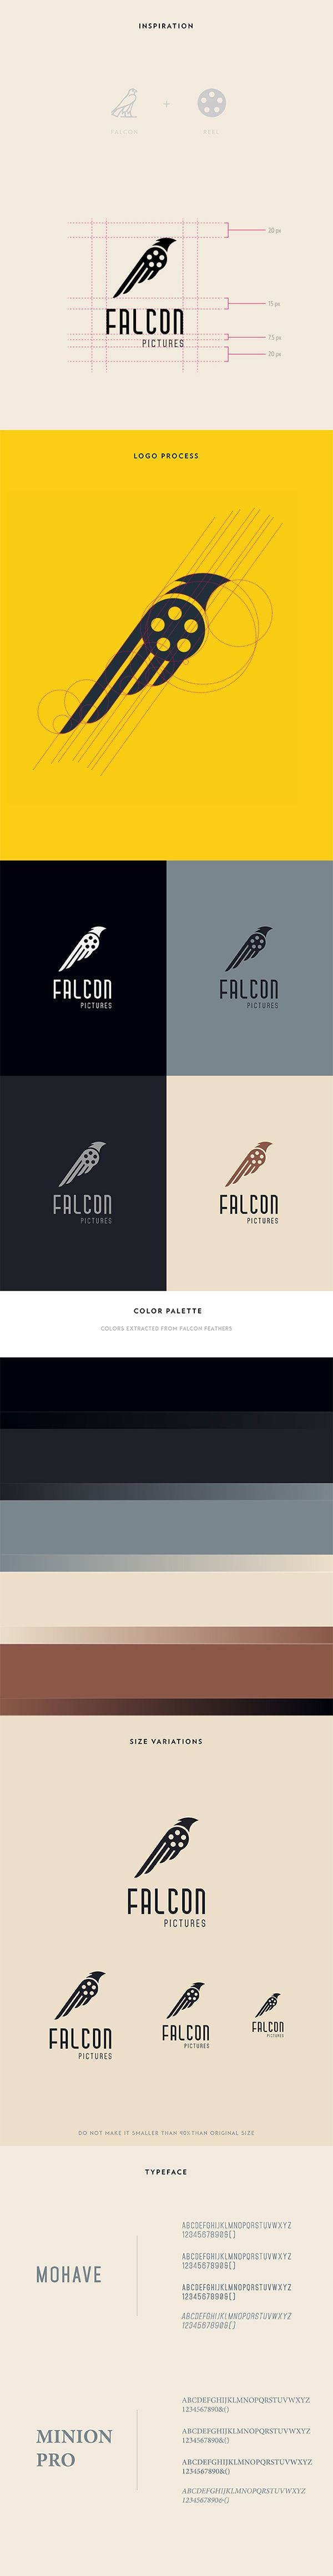 Logo diseño de Manual y Identidad Corporativa (Falcon Pictures)